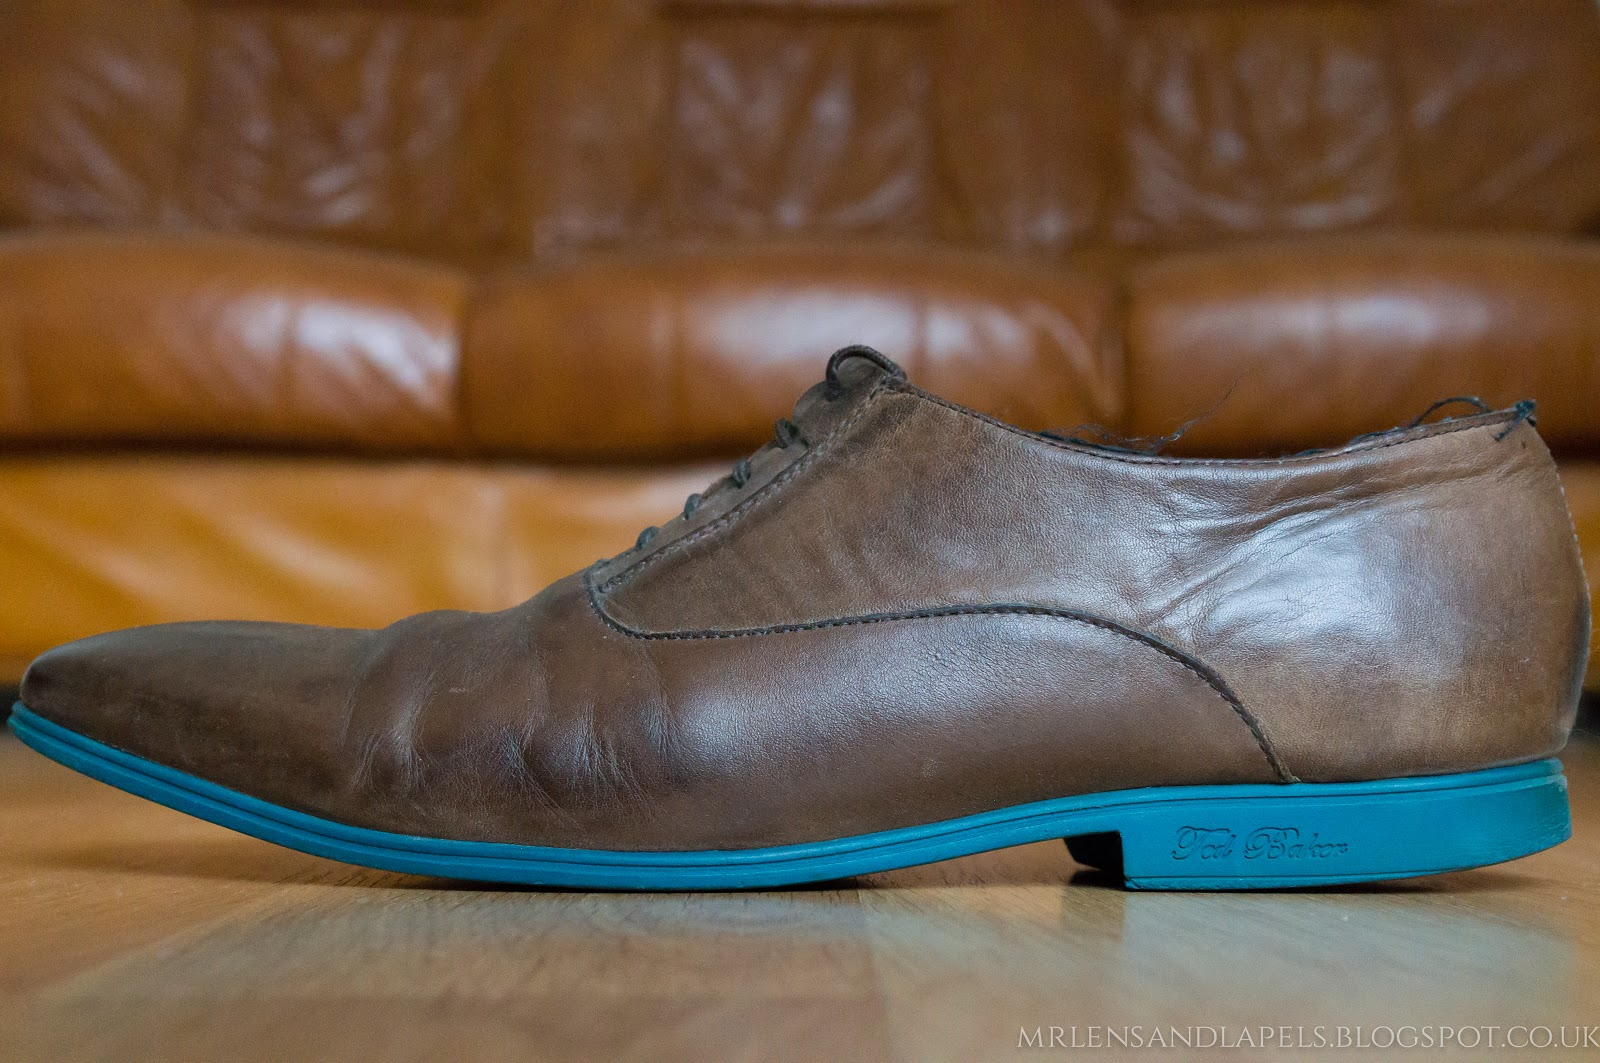 Ted Baker leather shoes blue sole